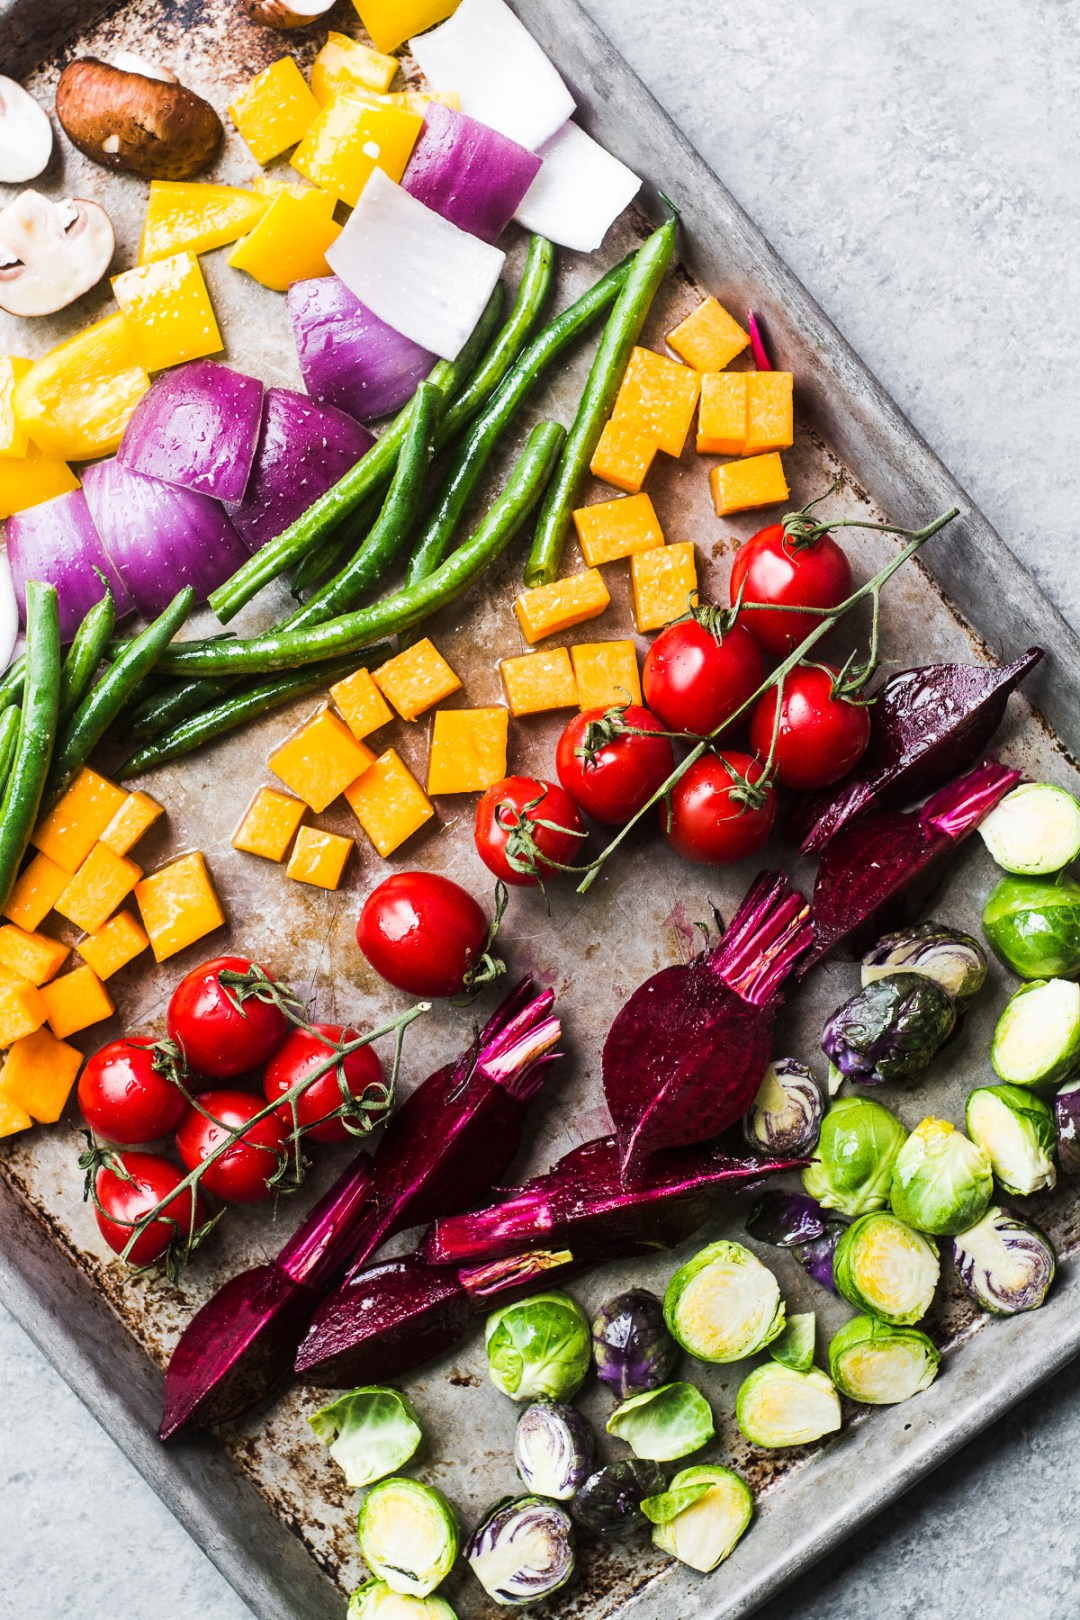 A tray of rainbow vegetables waiting to be roasted for a roasted vegetable winter bliss bowl